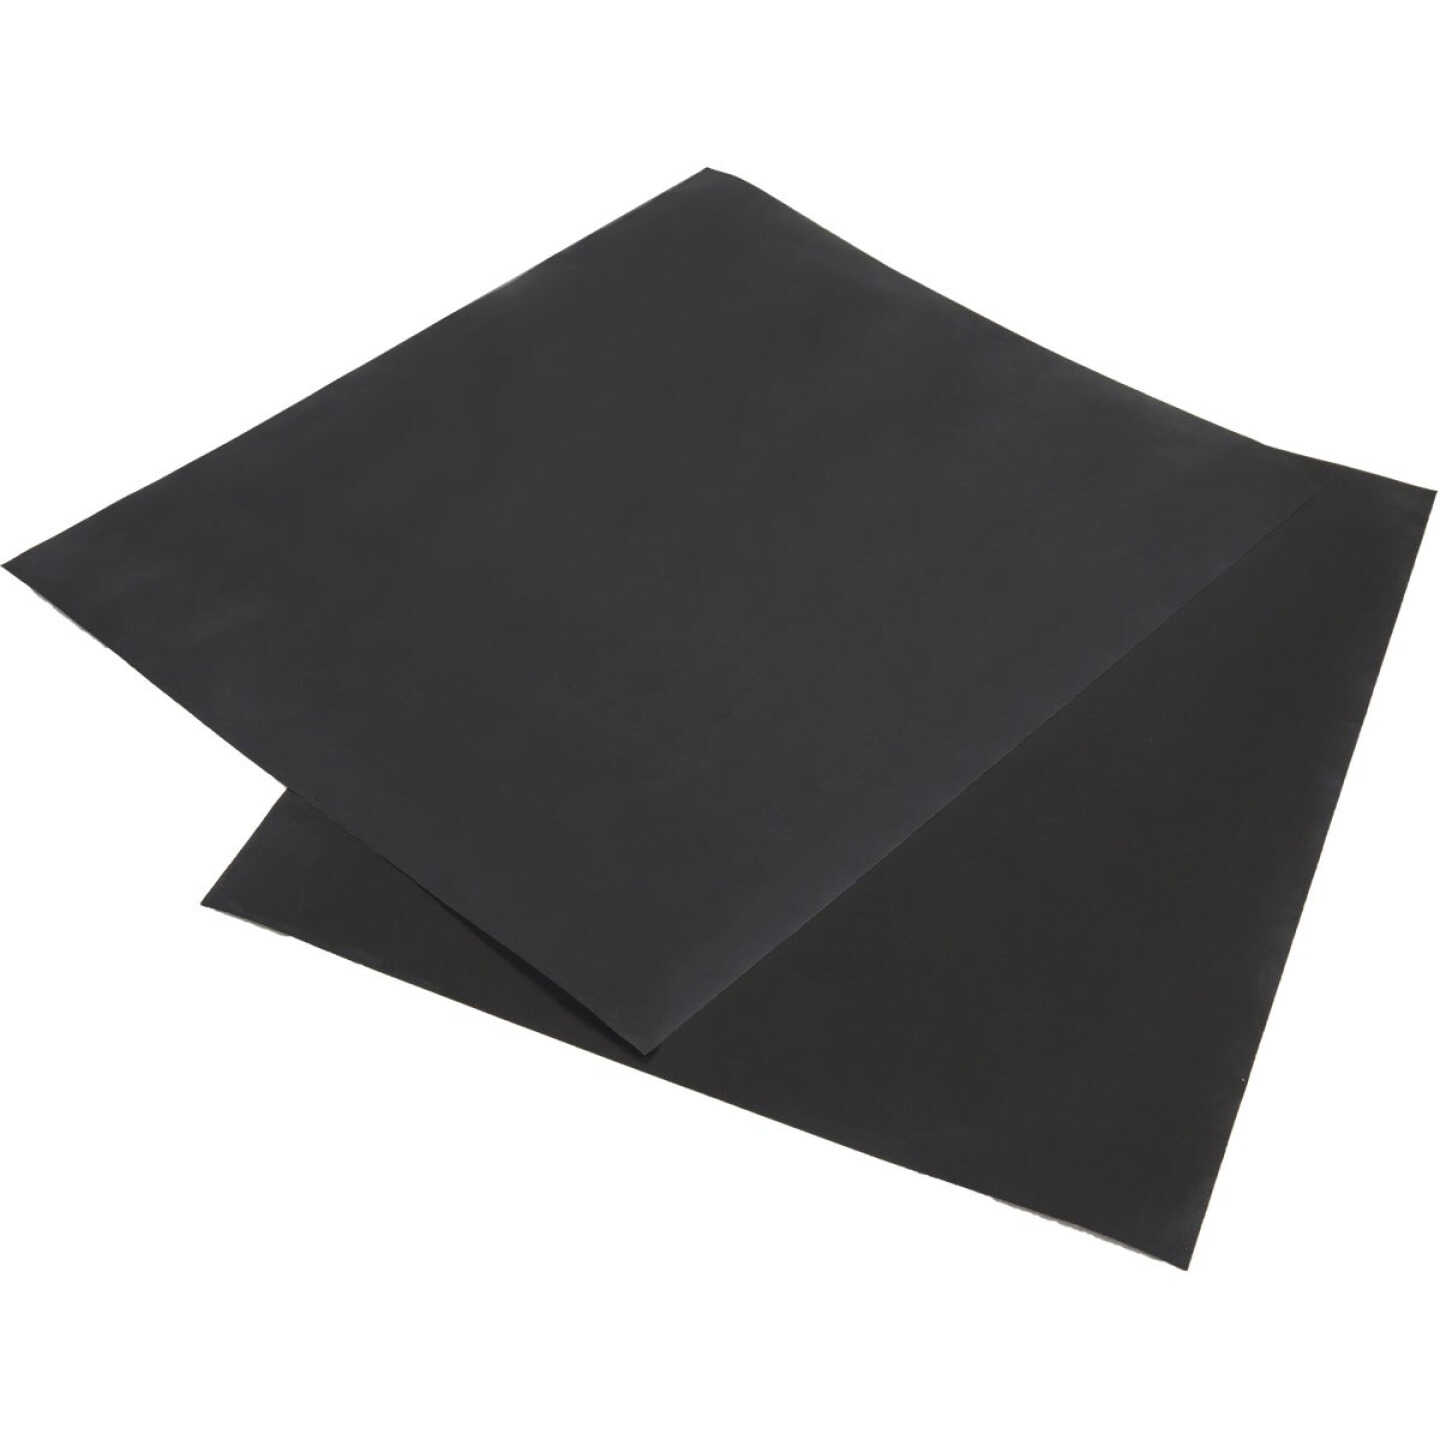 GrillPro 15.75 In. W. x 13 In. L. Non-Stick Cooking Mat (2-Pack) Image 1